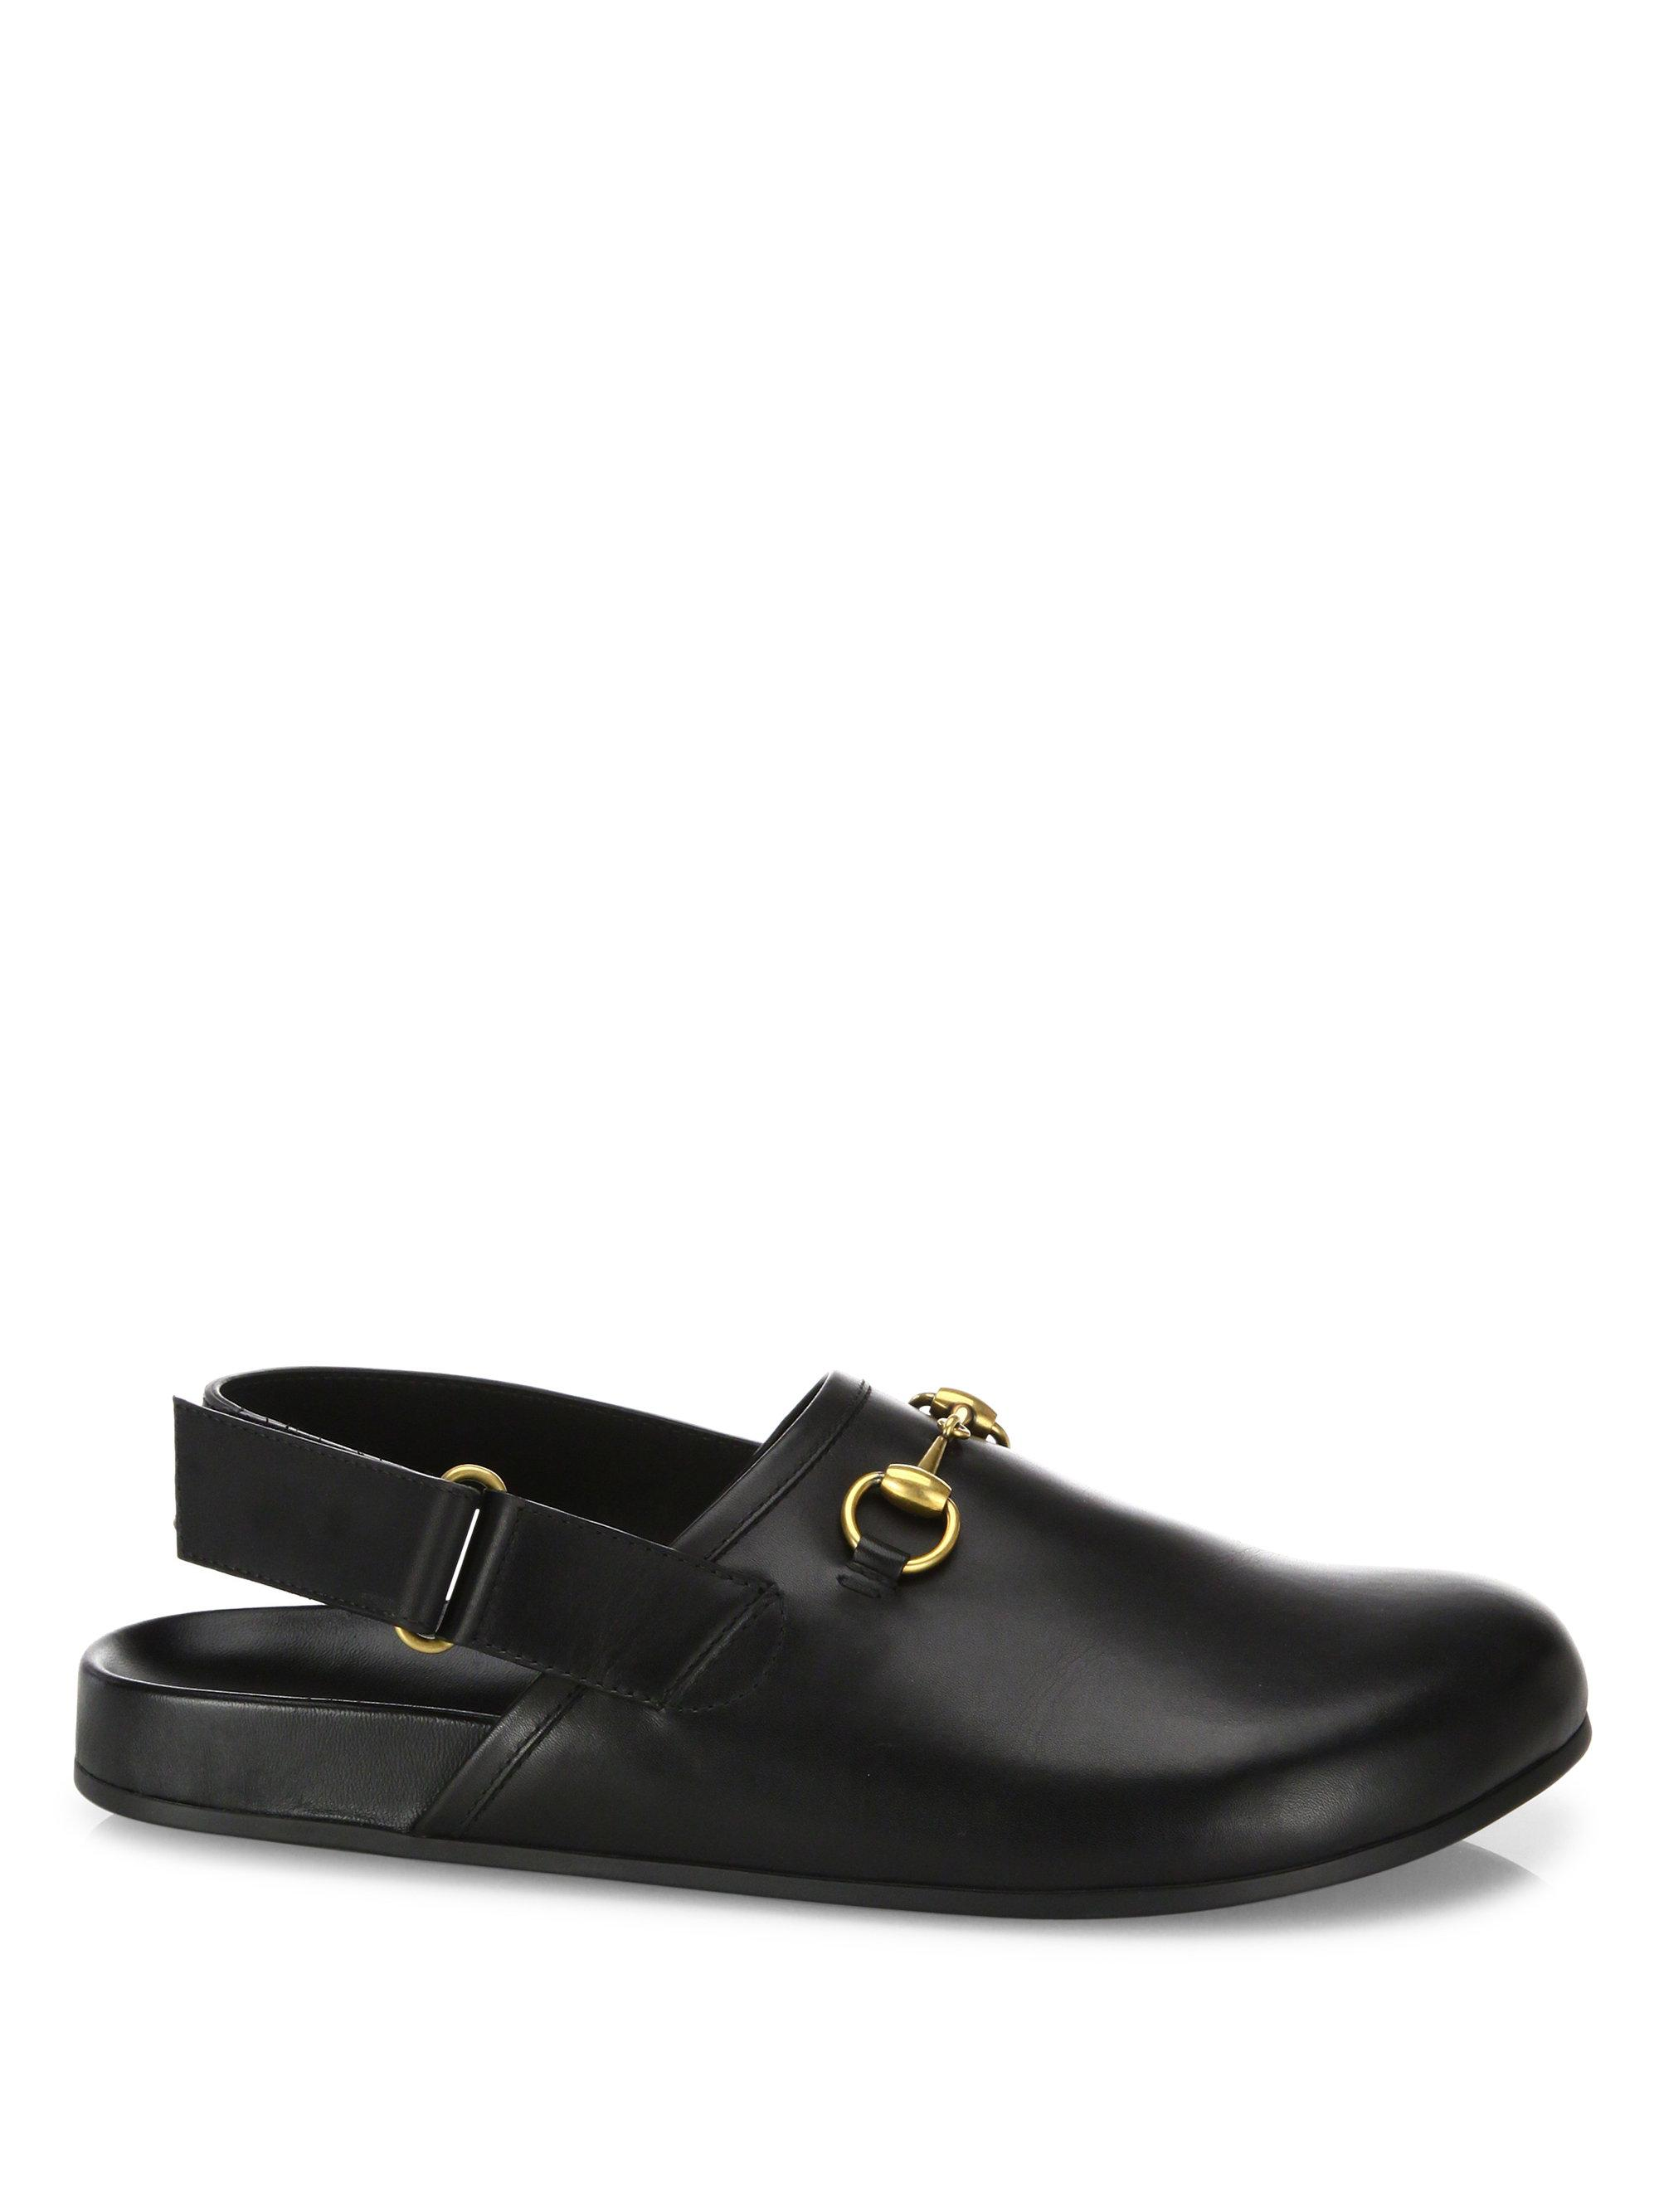 Gucci. Women's Black River Leather Clogs